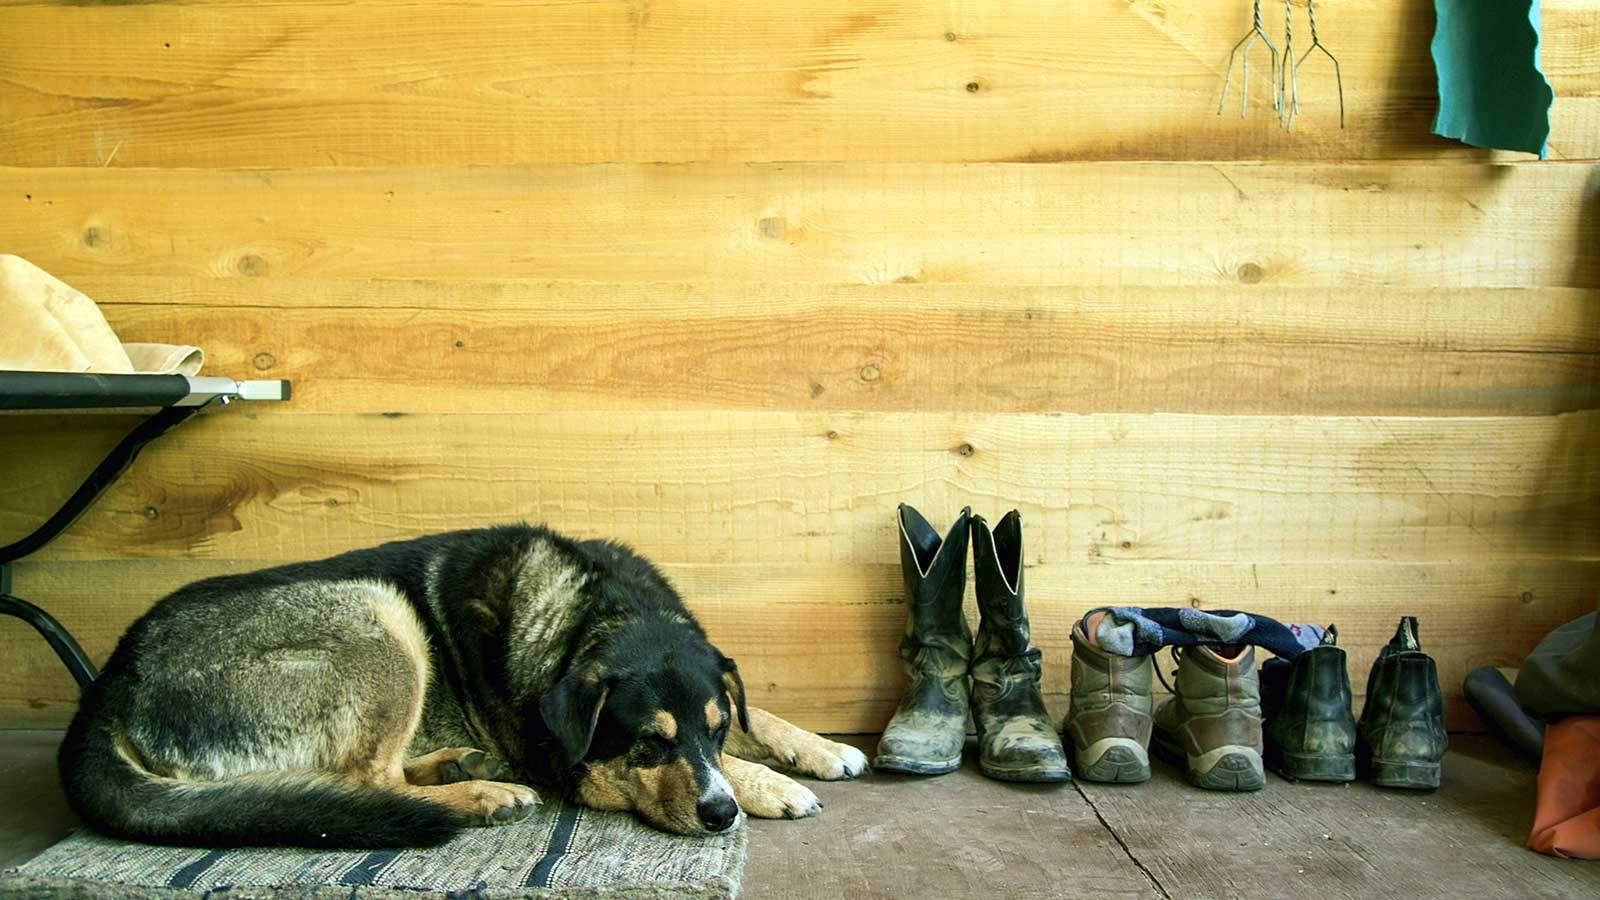 Dog sleeping next to cowboy boots and worn shoes